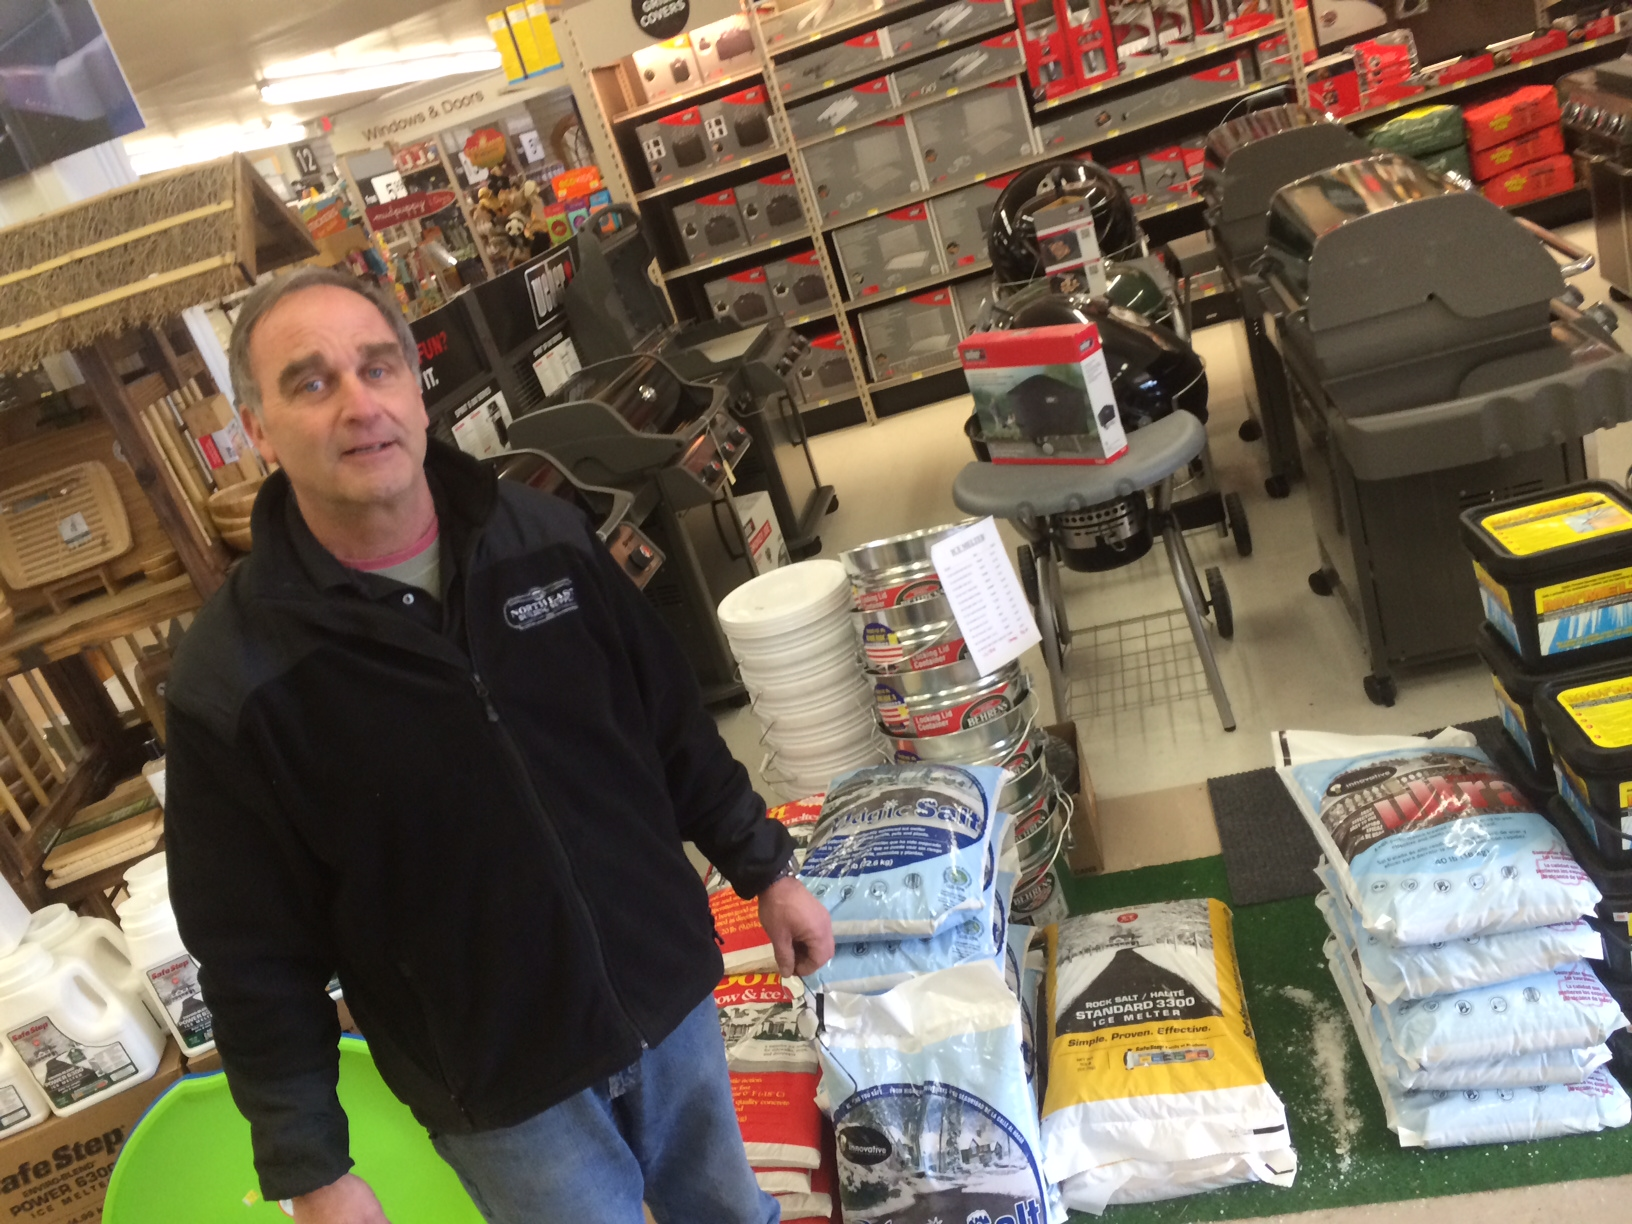 Al Ely at Weed & Duryea says the store is selling out of salt quickly. Credit: Michael Dinan